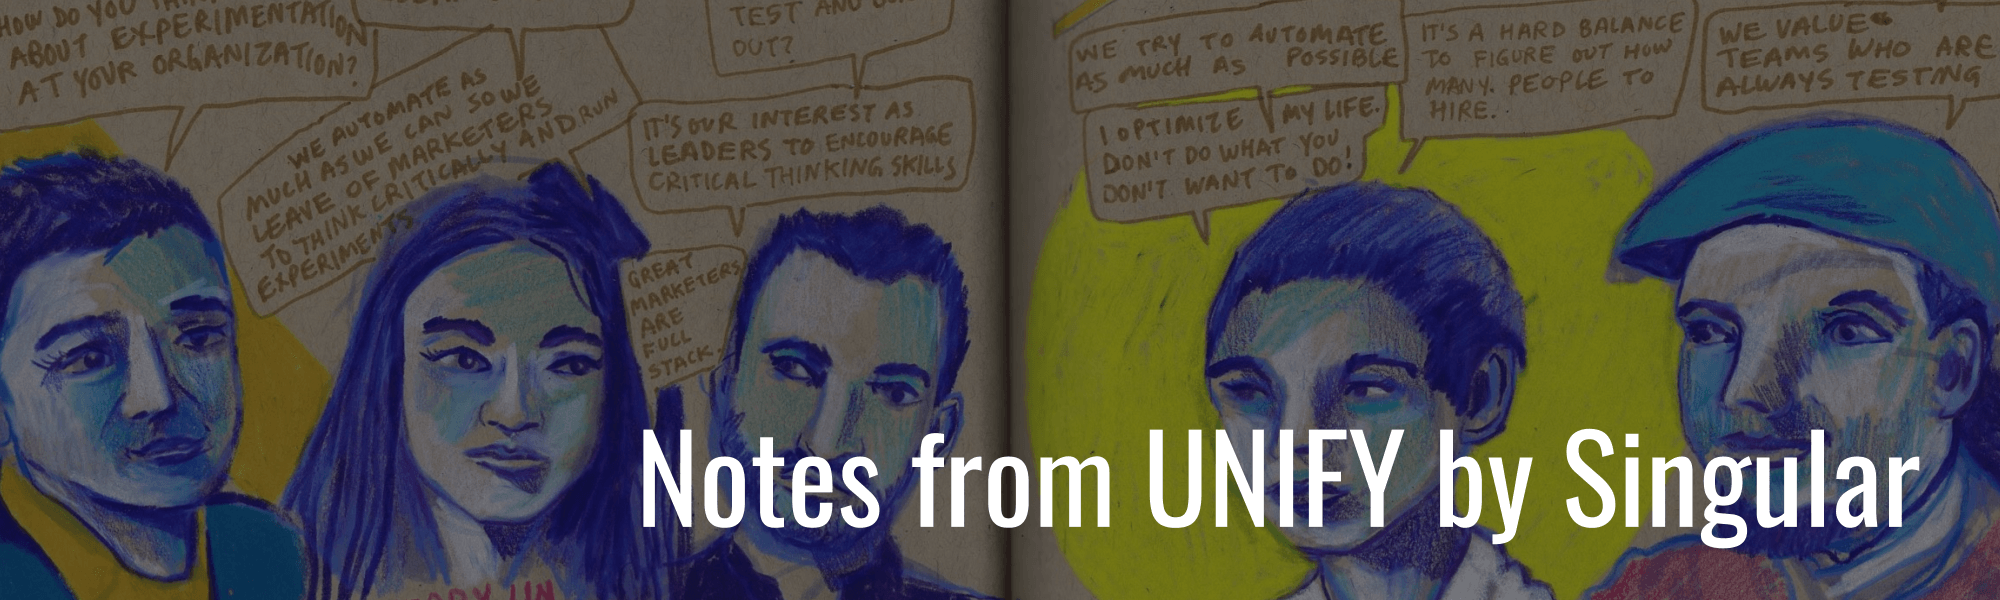 notes-from -unify-singular-illuminated-notes-case-study-late-nite-art